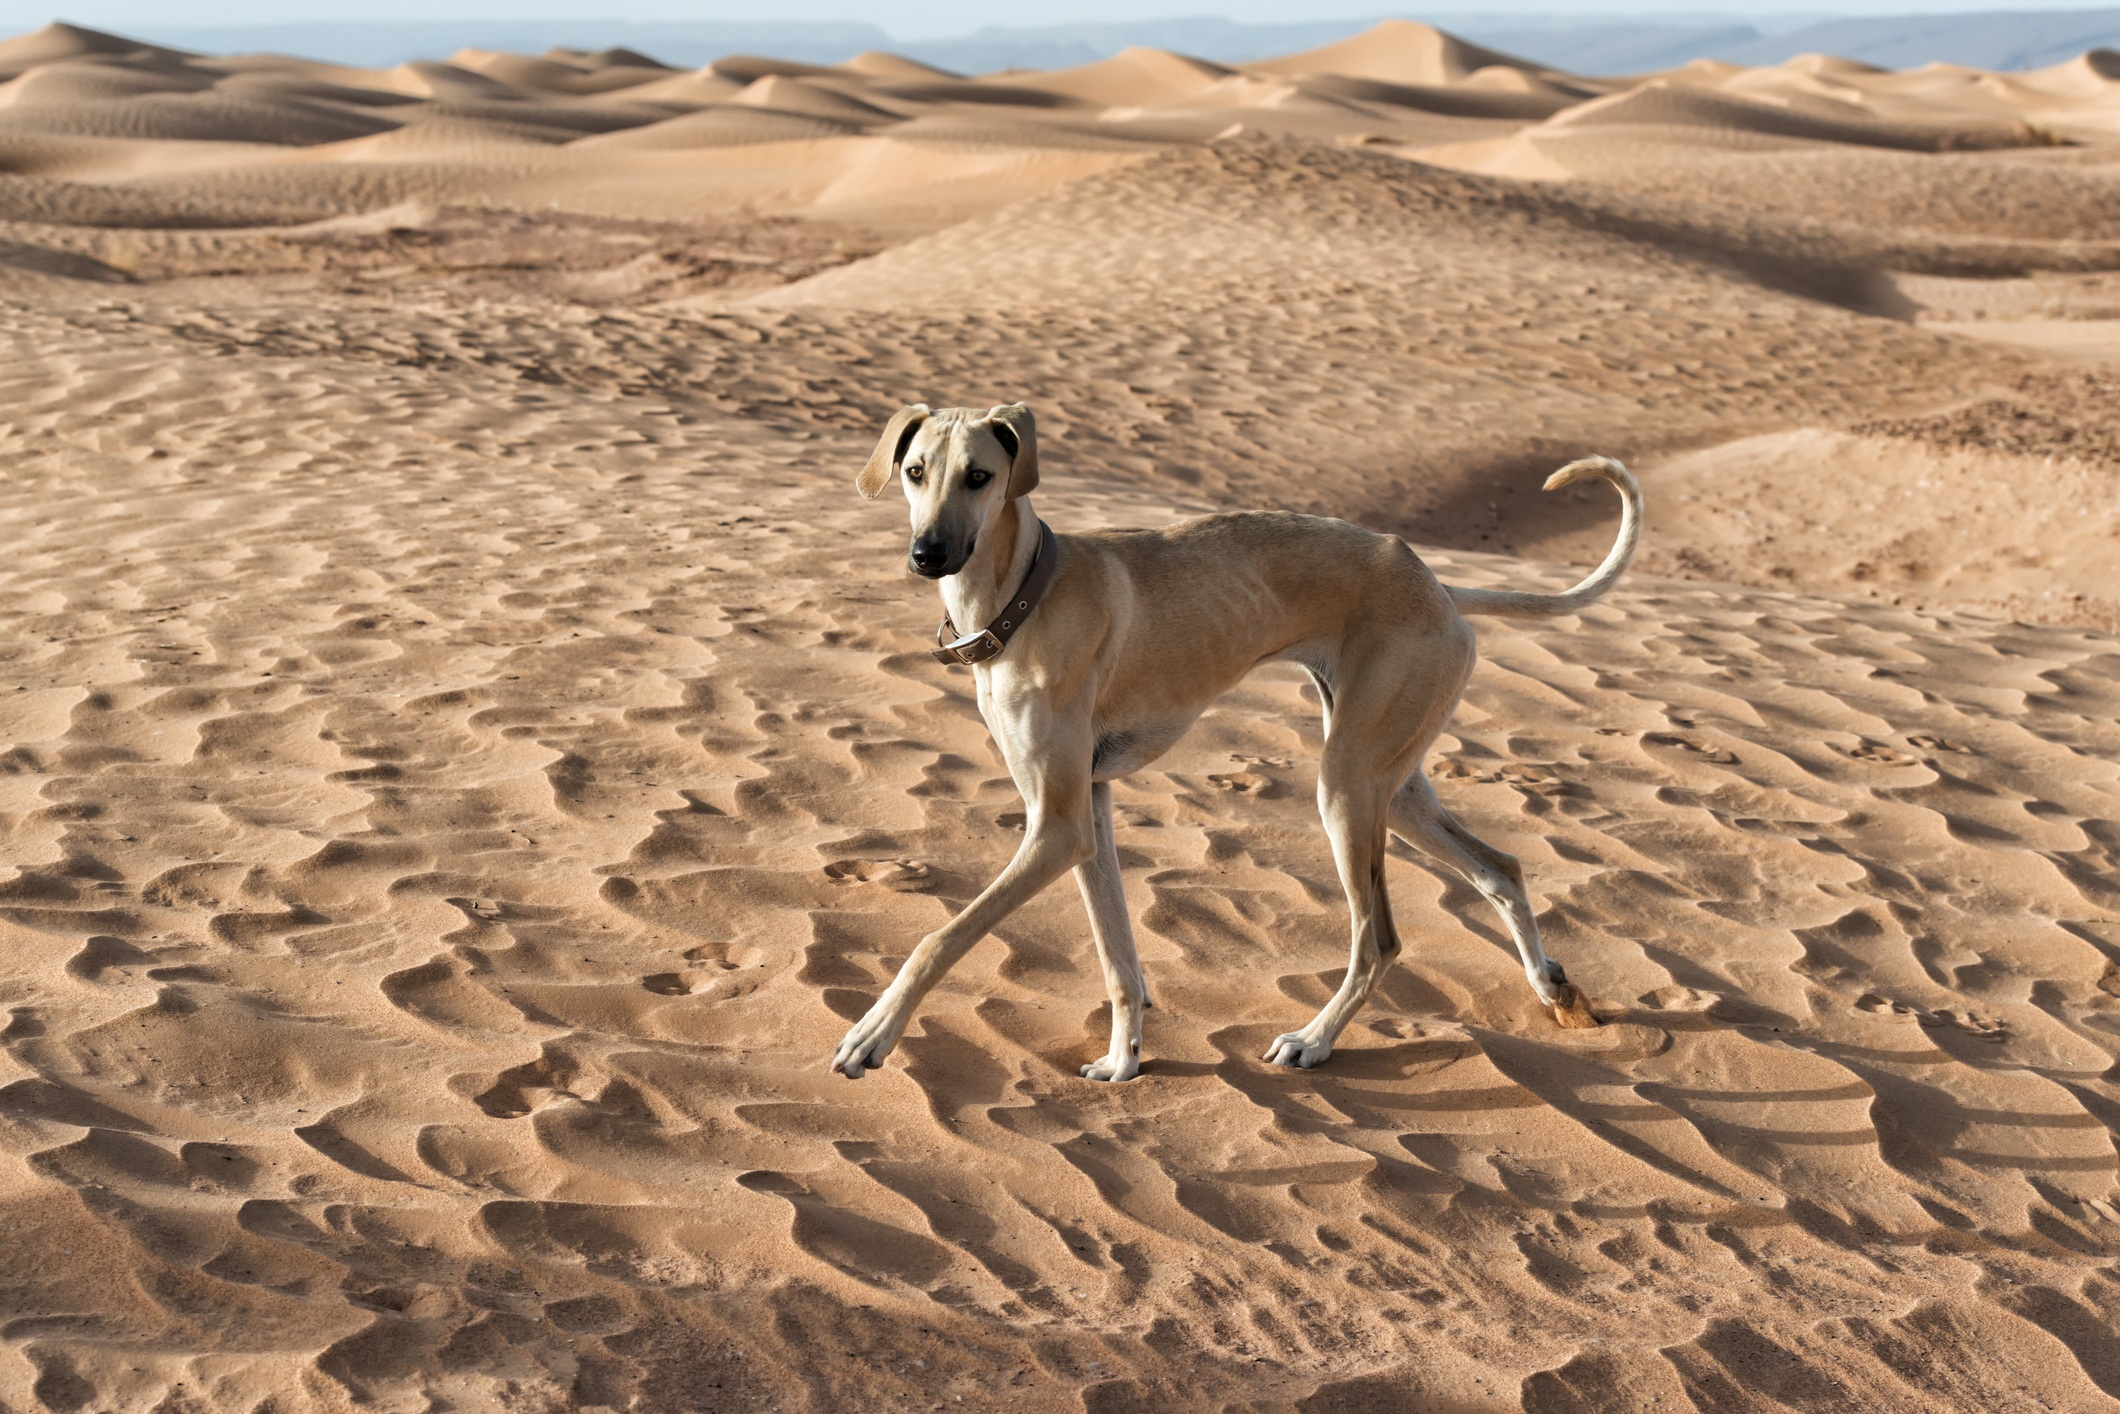 Sloughi greyhound in enjoys the sand dunes in Morocco.